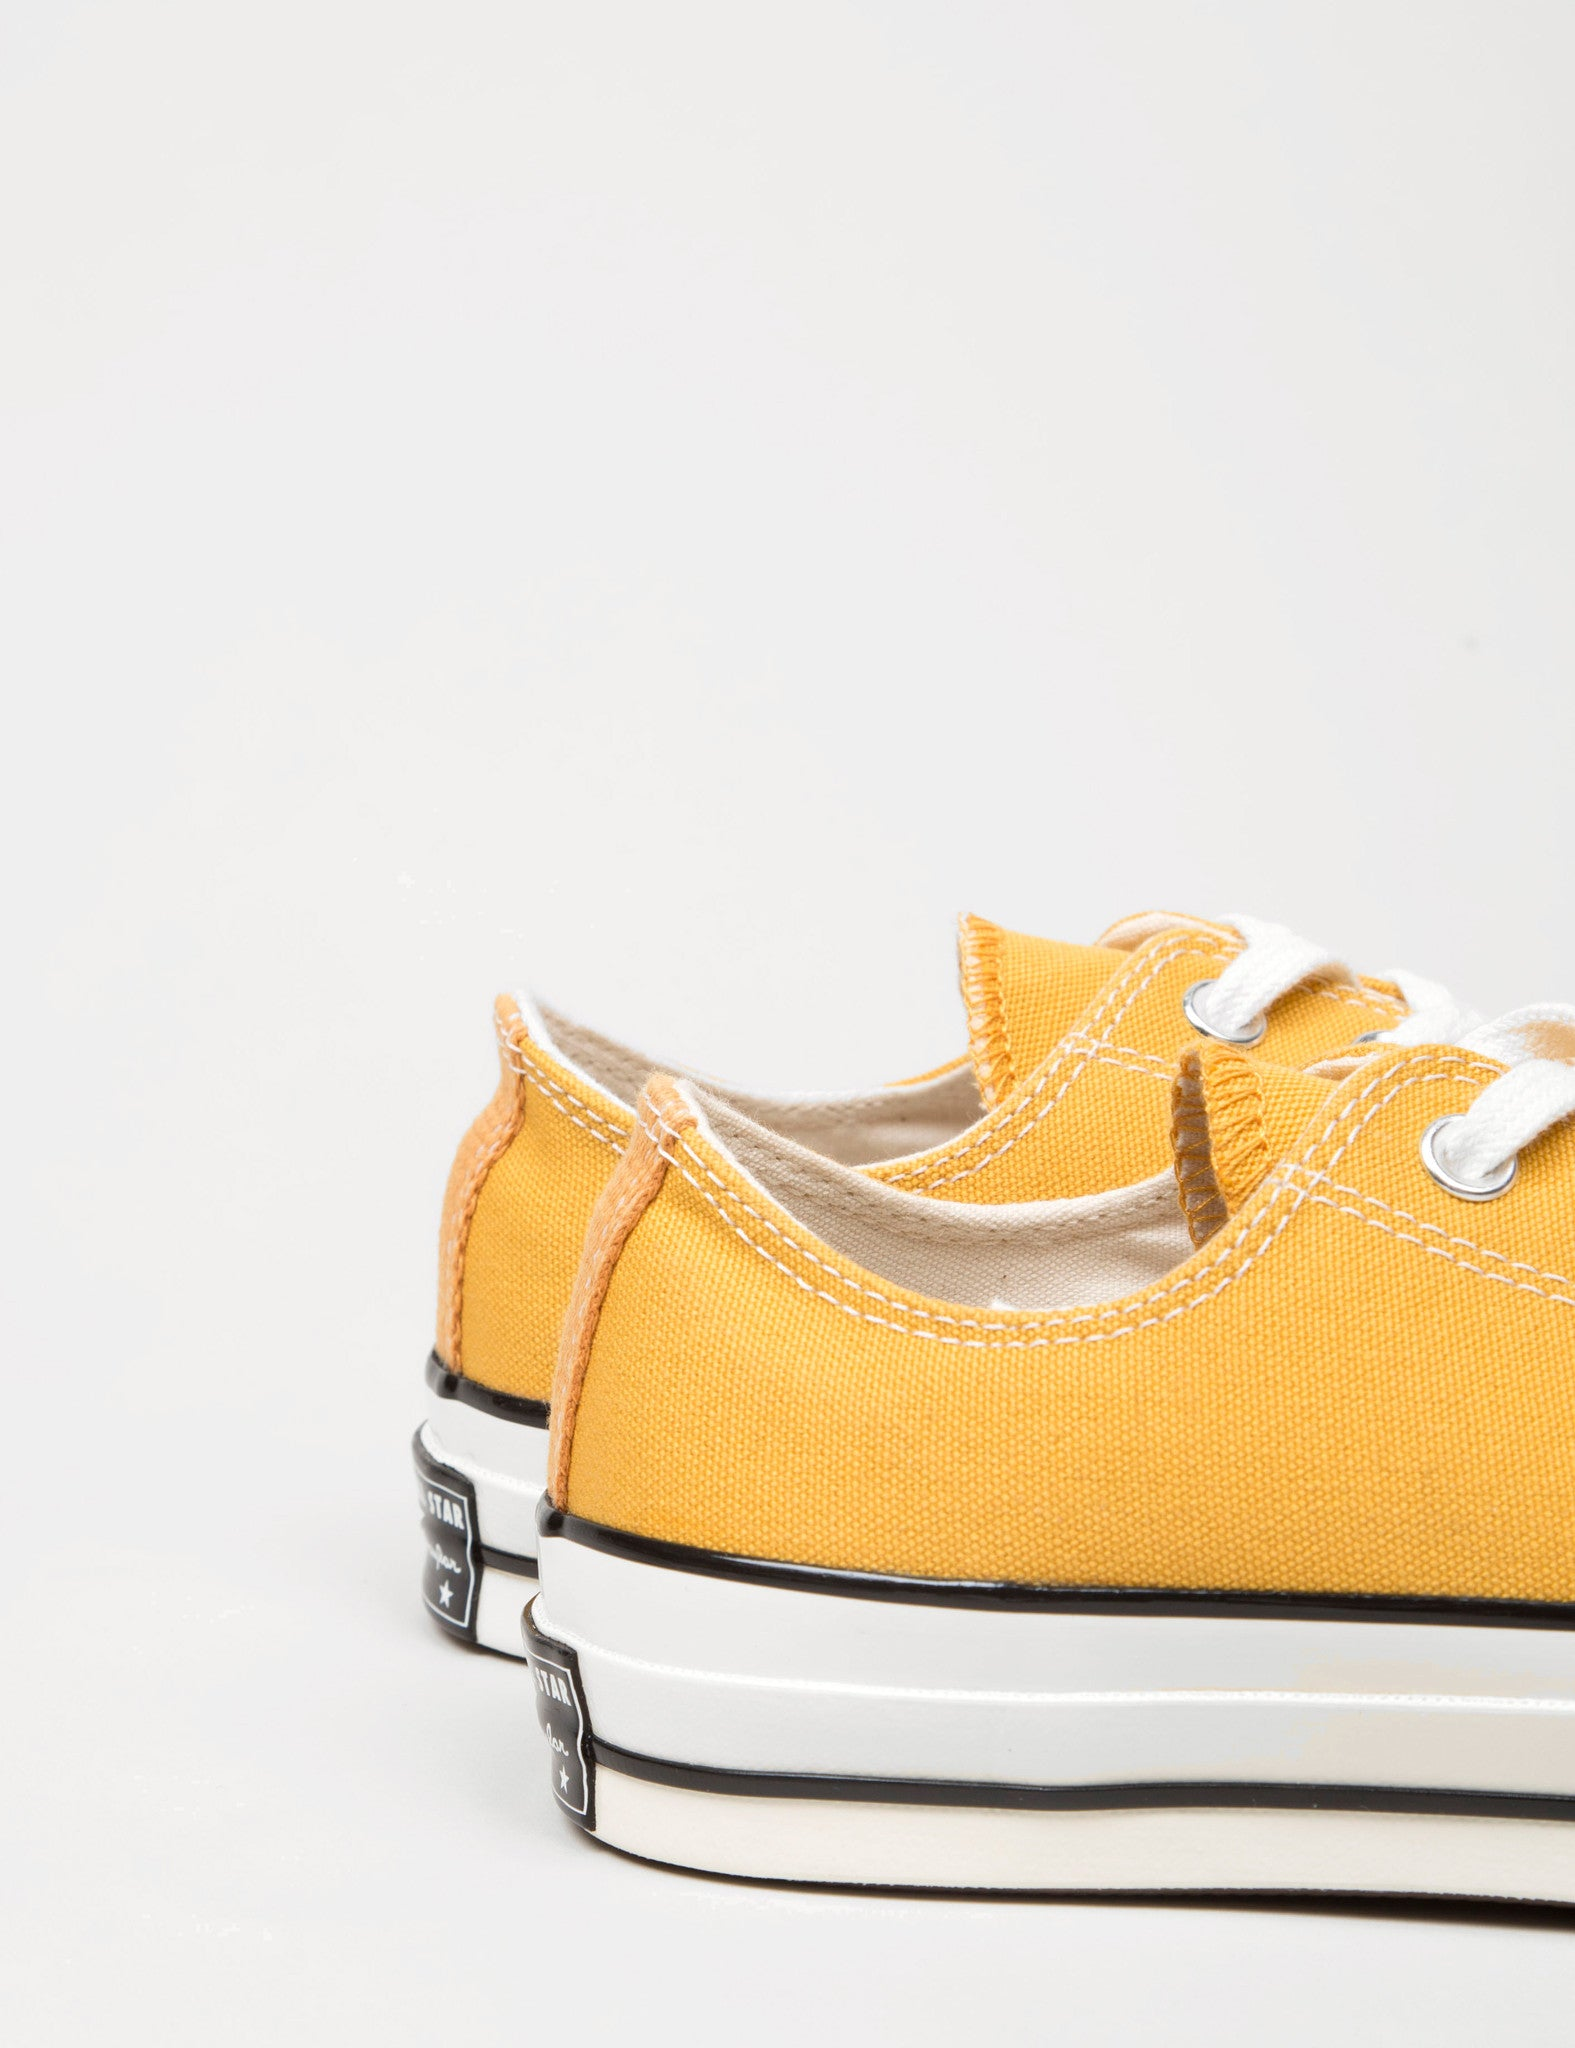 Converse 70's Chuck Taylor Low - Sunflower